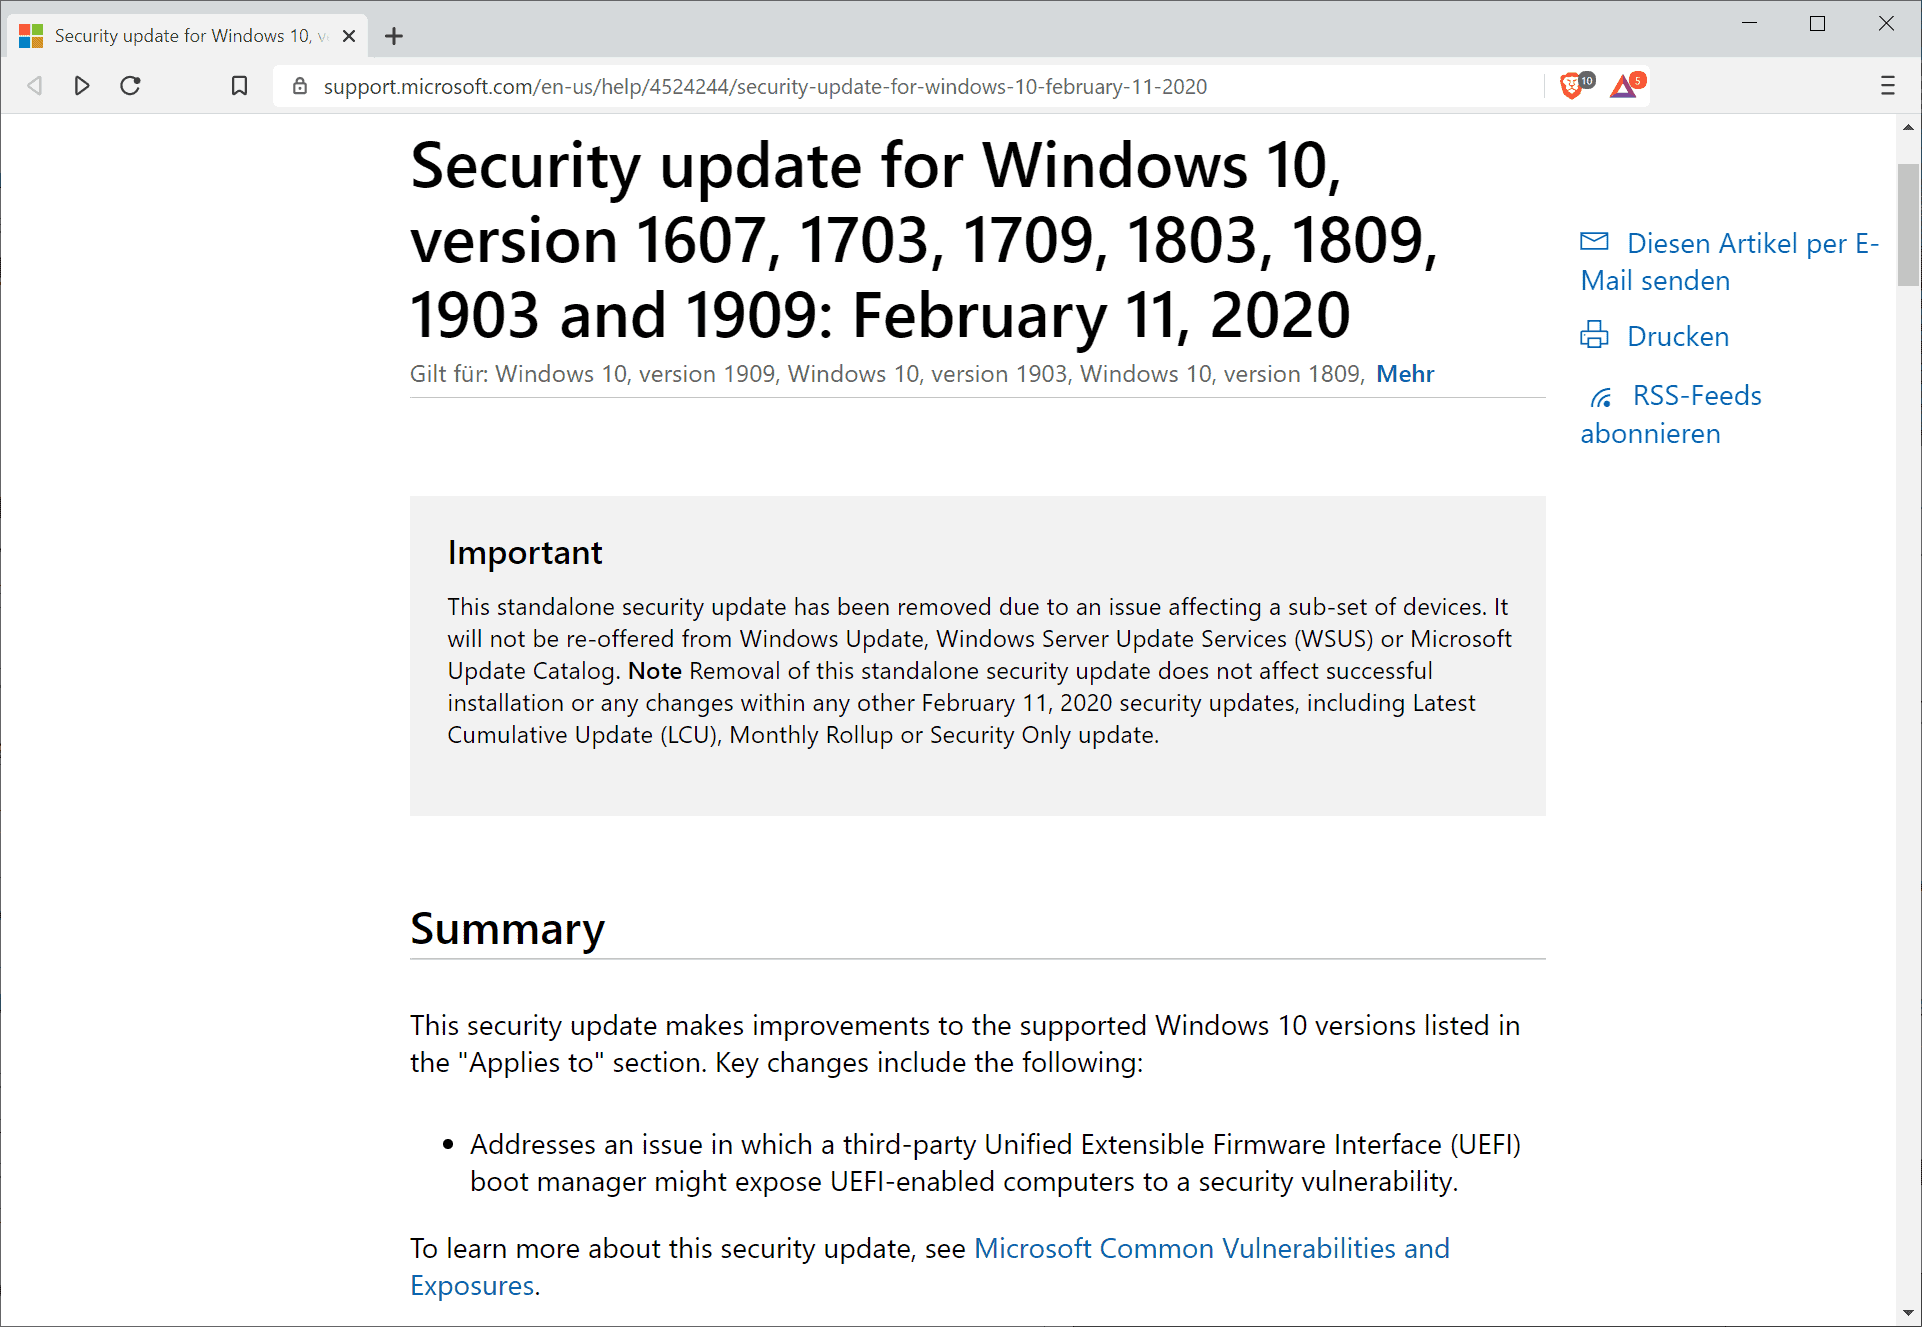 Buggy Windows security update (KB4524244) has now been removed by Microsoft